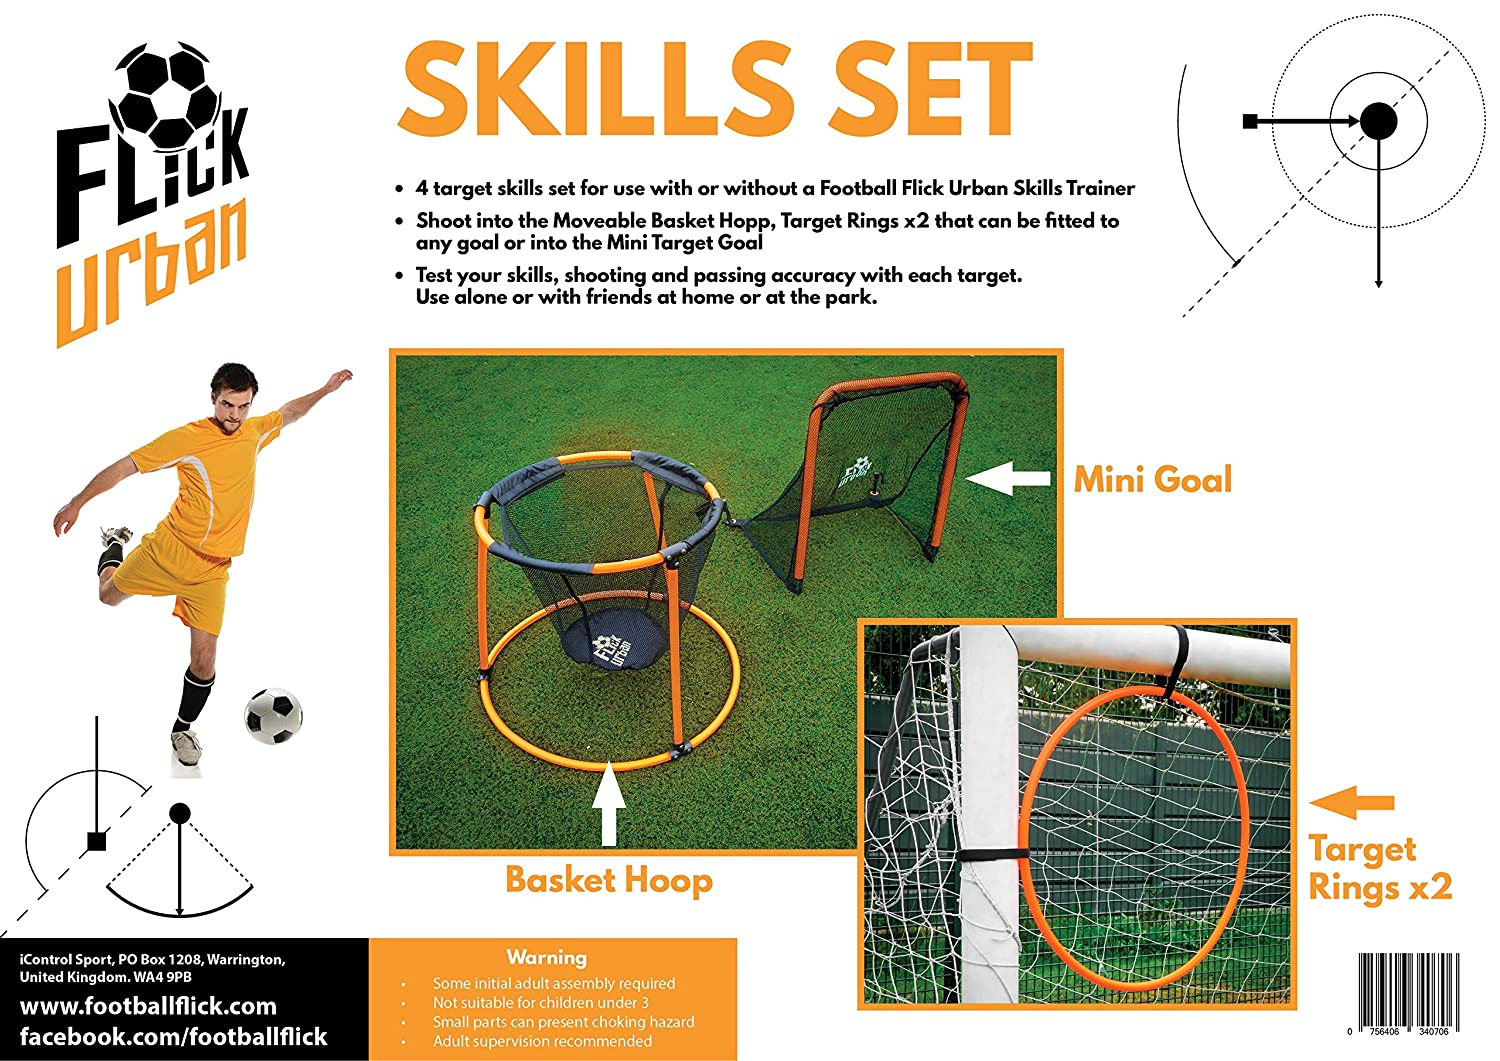 football flick urban skills package mitre tactic mbs football flick urban skills package mitre tactic mbs hand pump amazon co uk sports outdoors